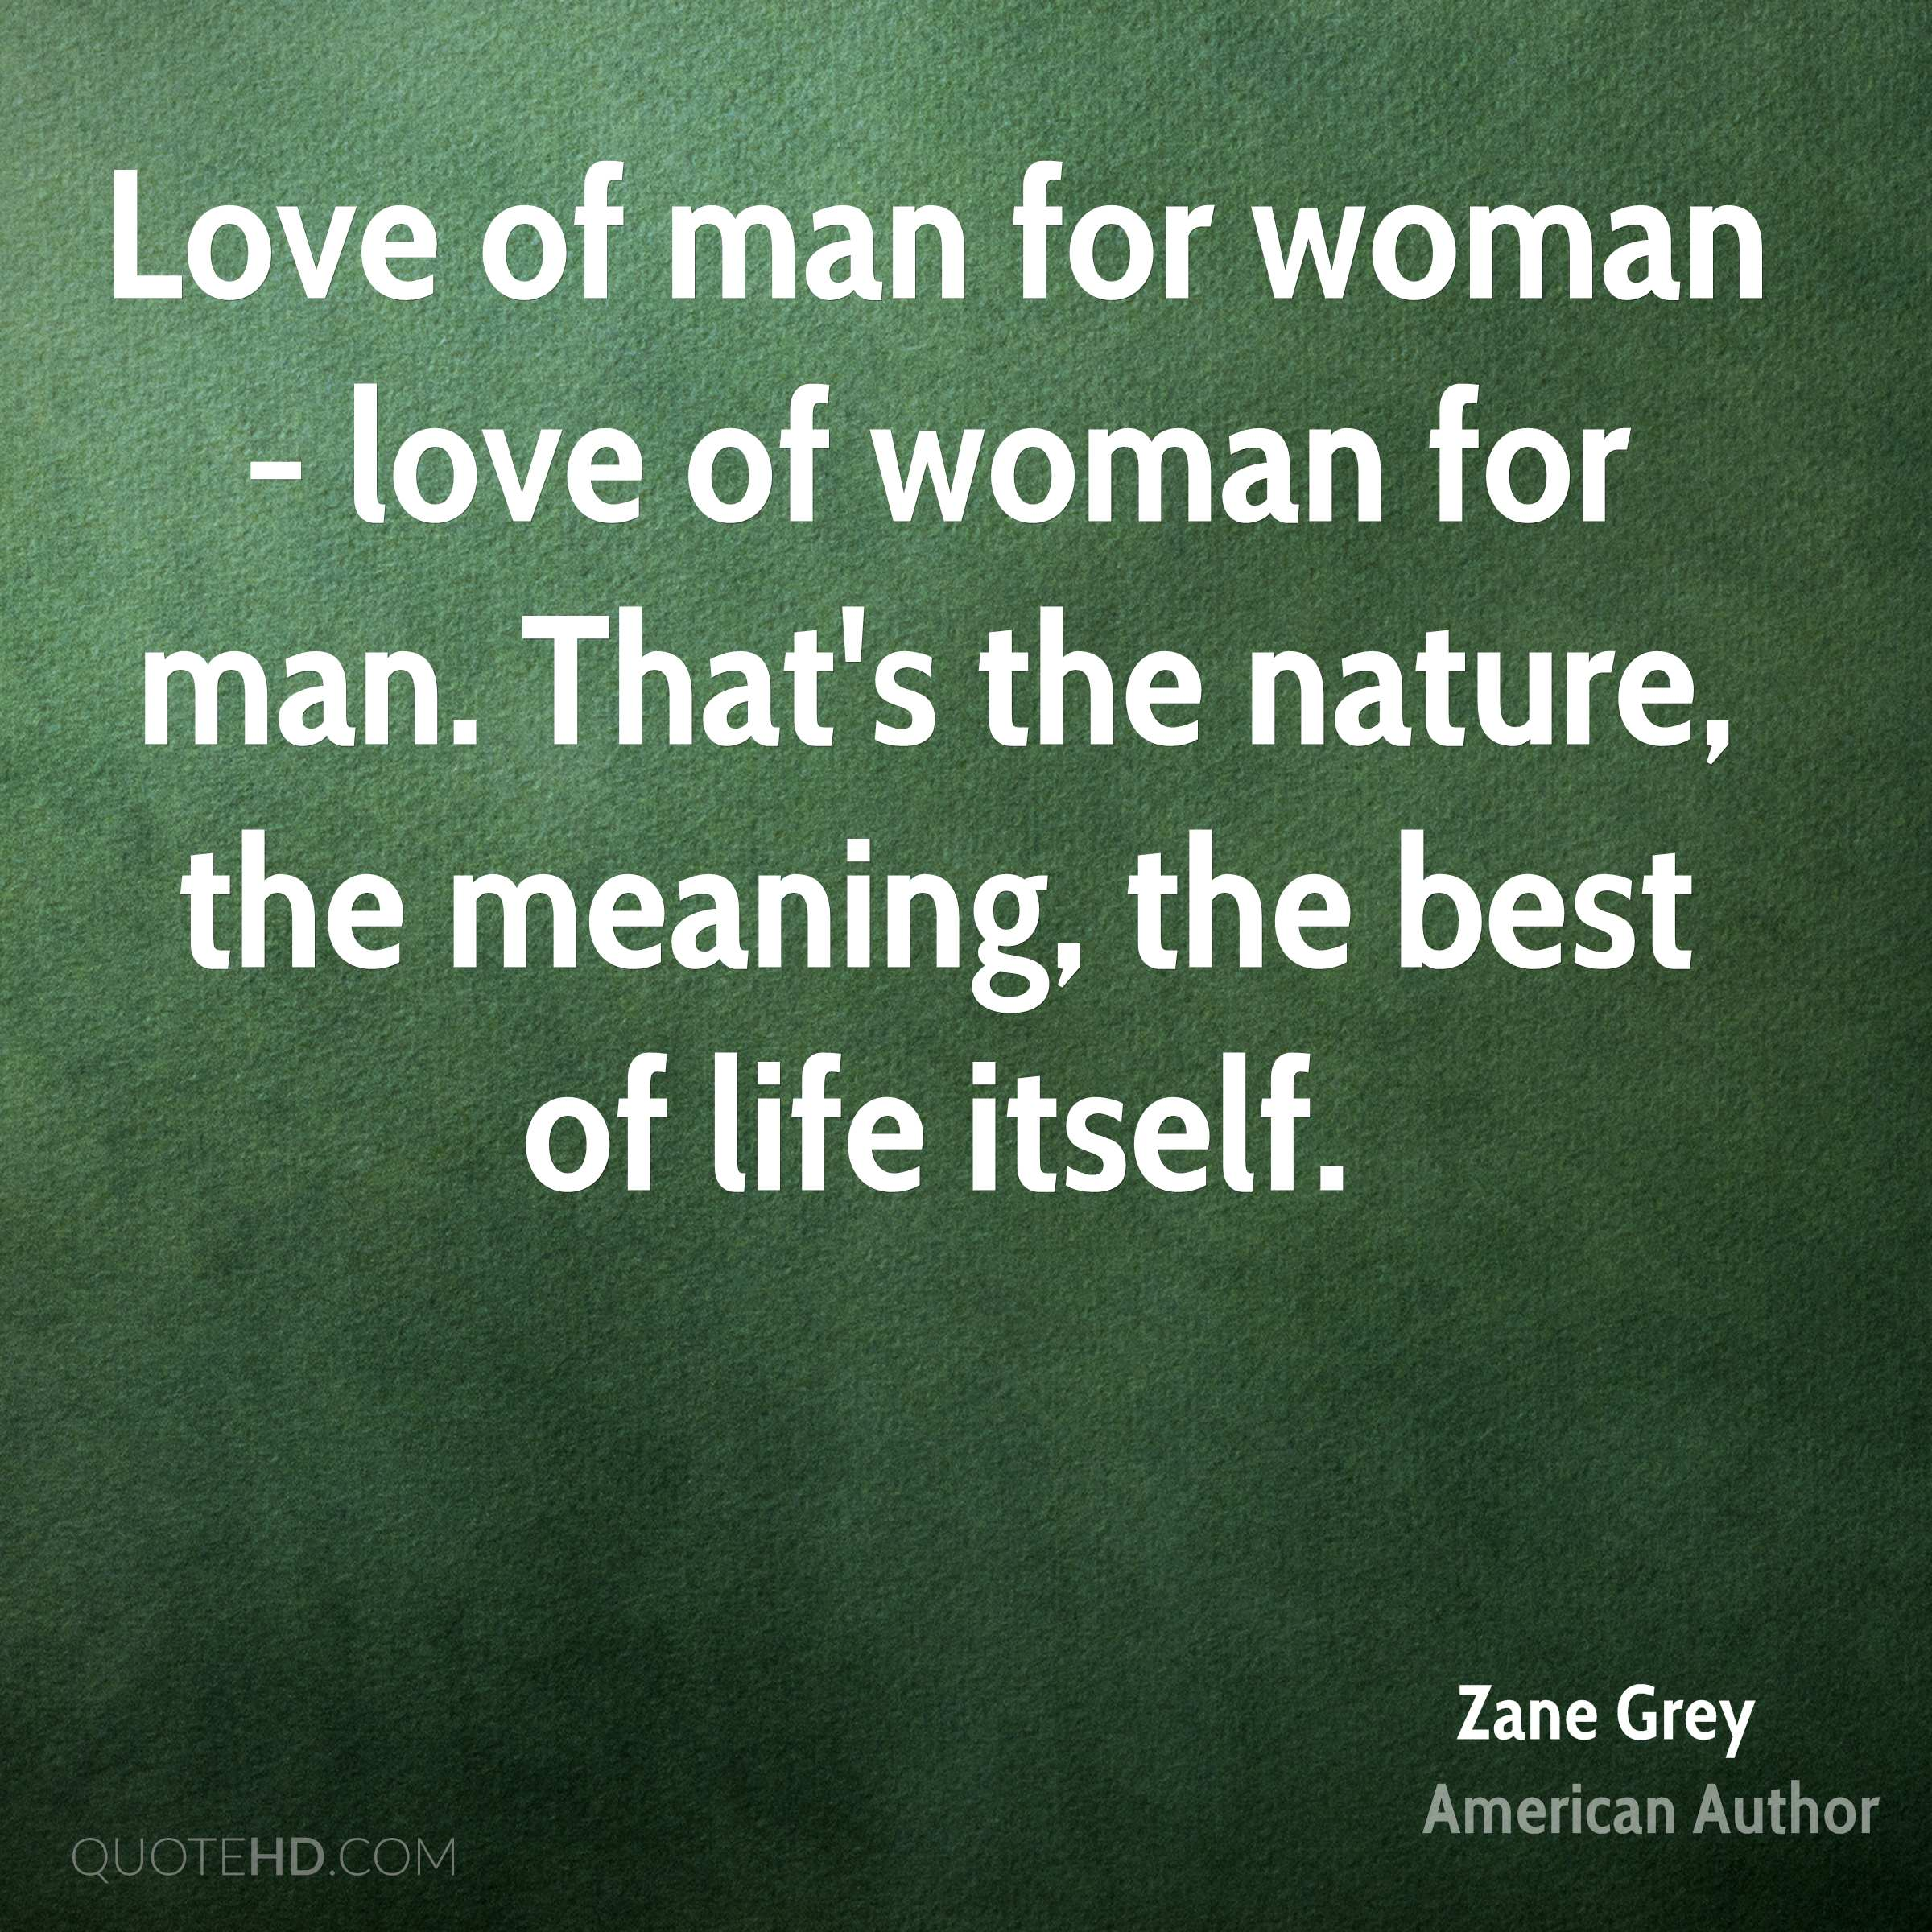 man environment relationship definition of